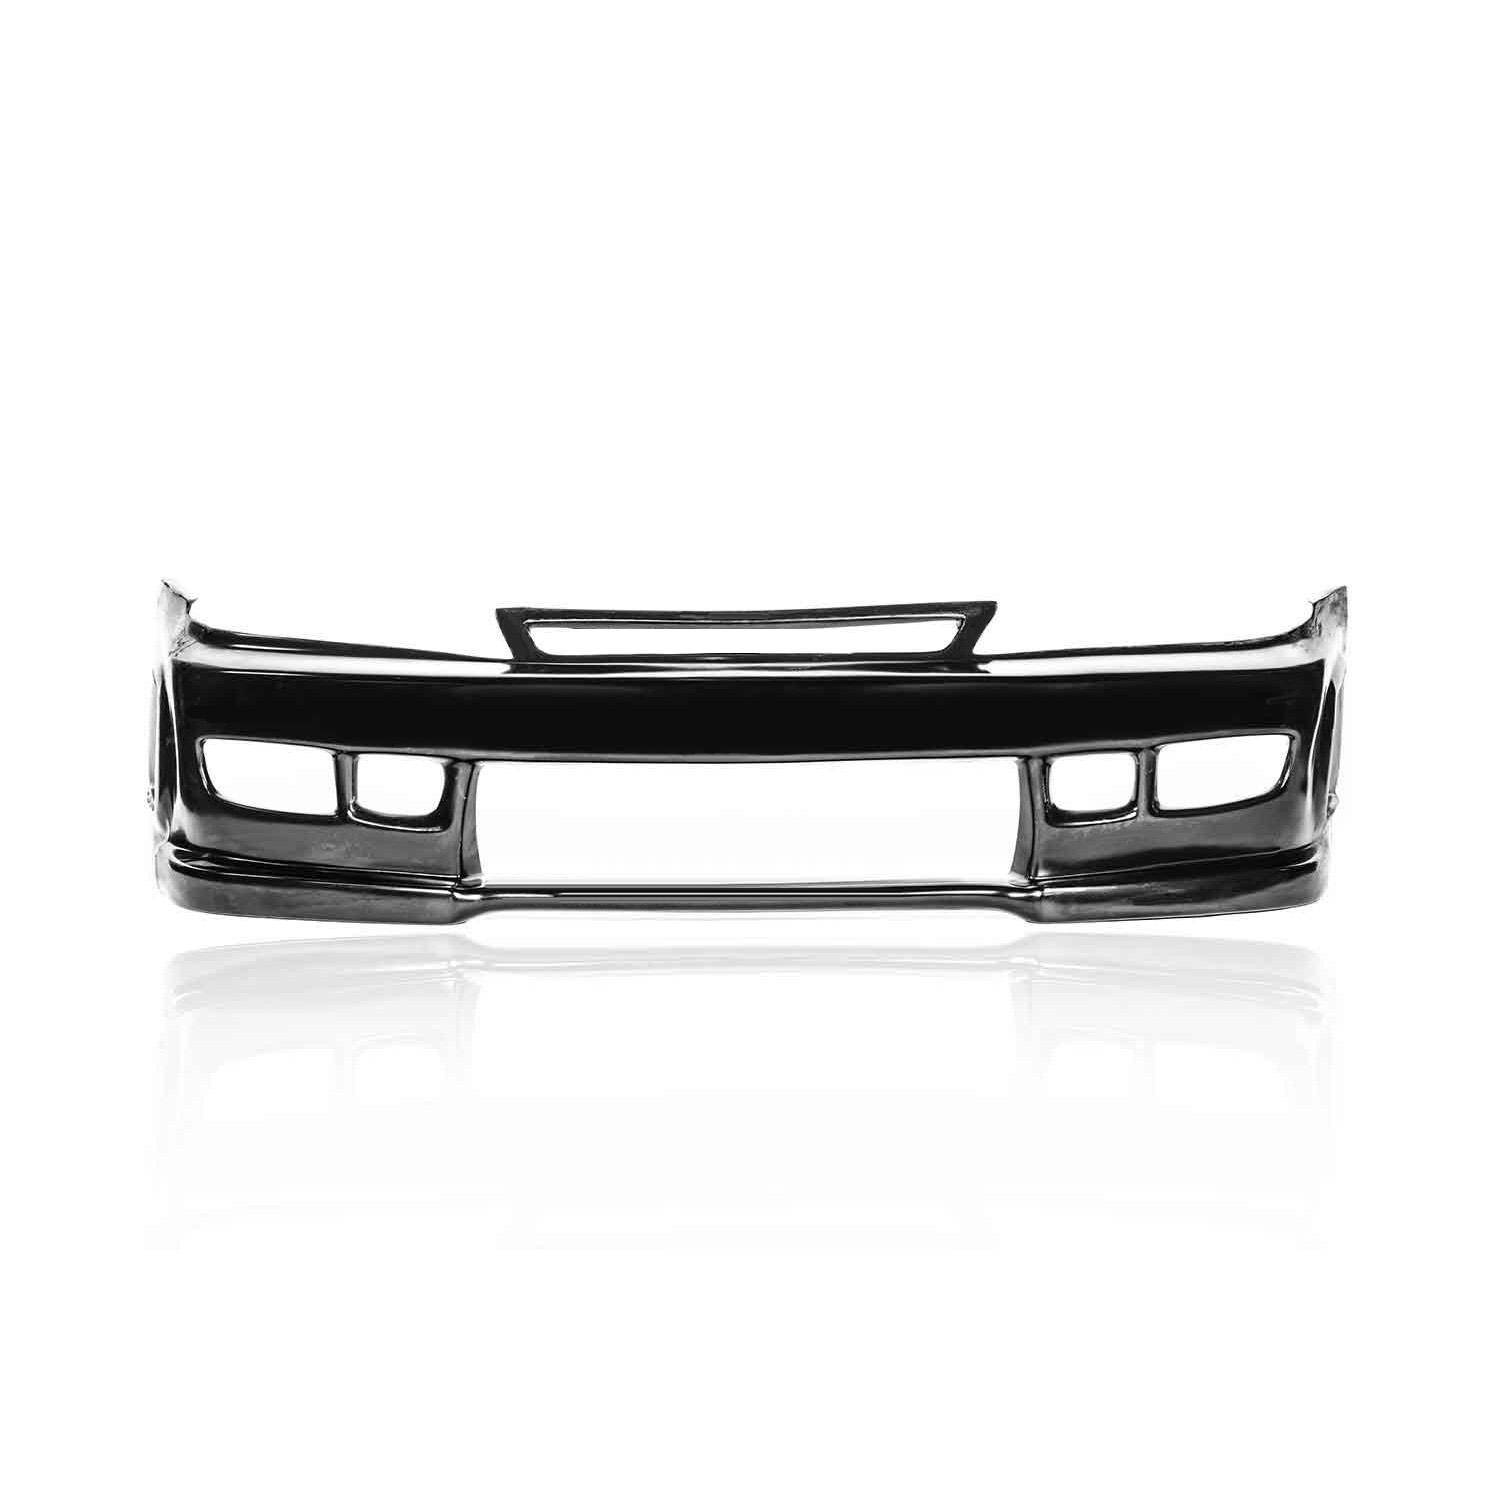 Honda Accord 1994-1997 BW Spec Style 1 Piece Polyurethane Front Bumper